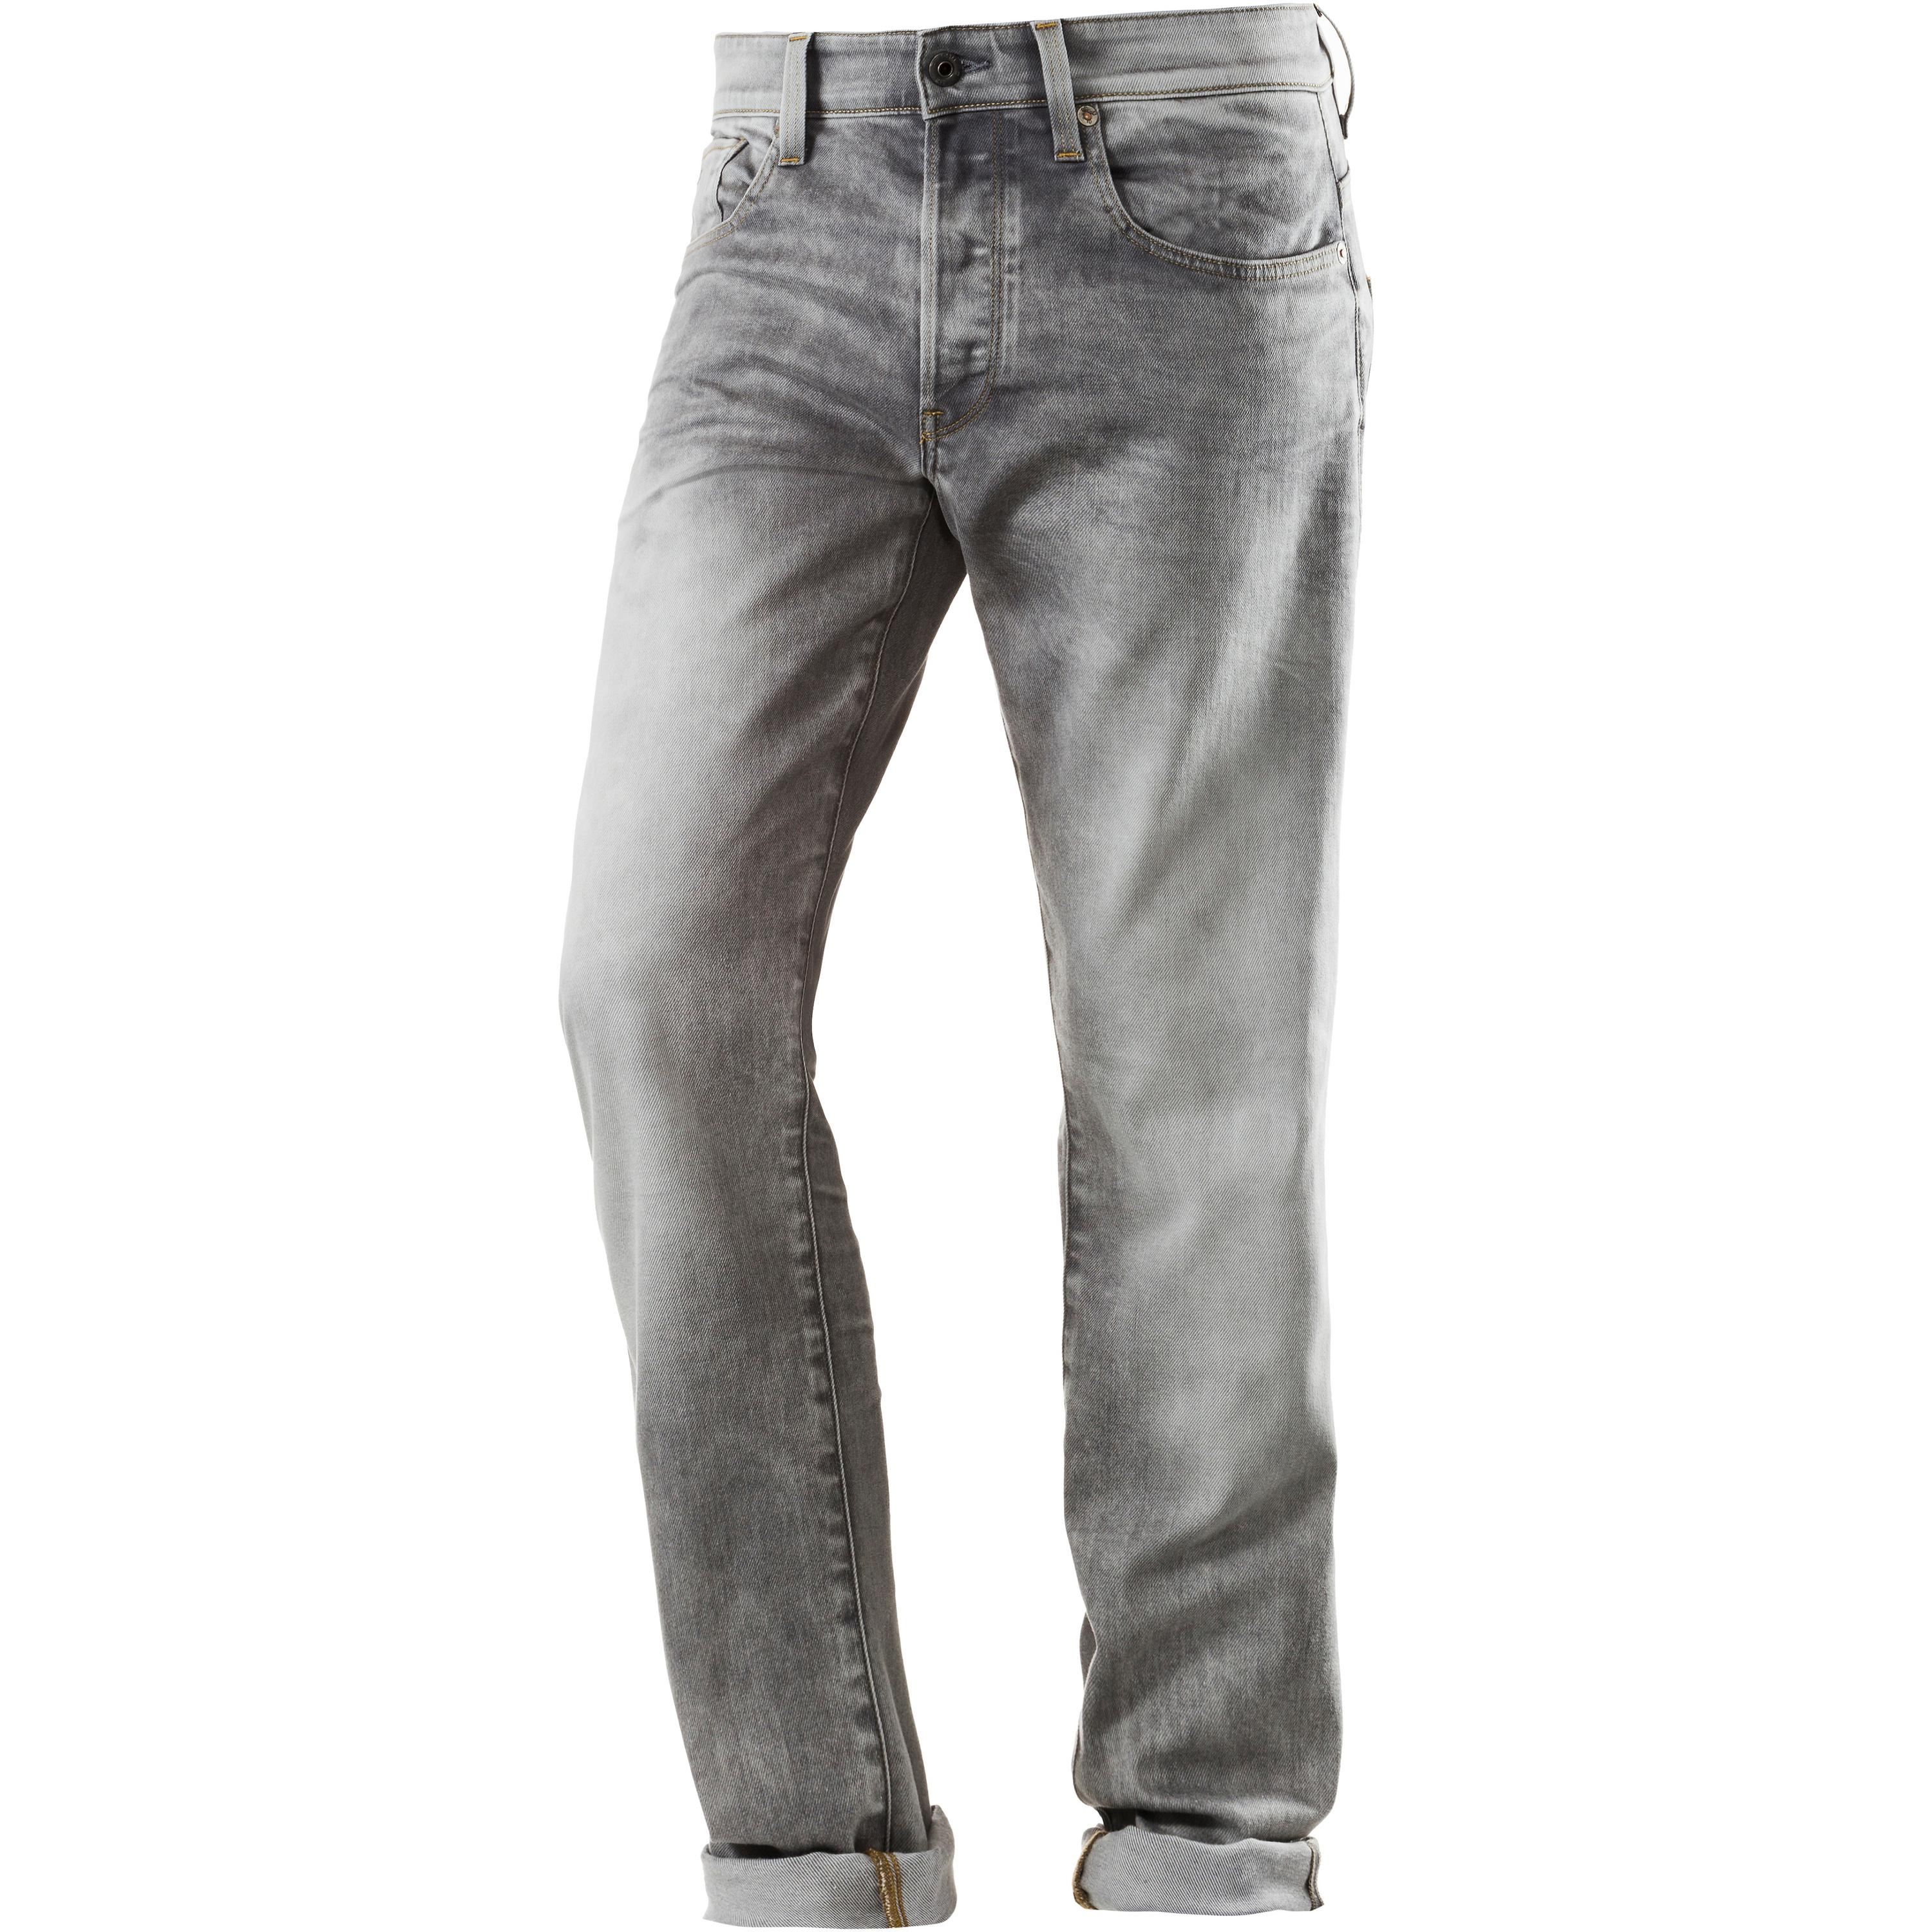 Image of G-Star 3301 Anti Fit Jeans Herren